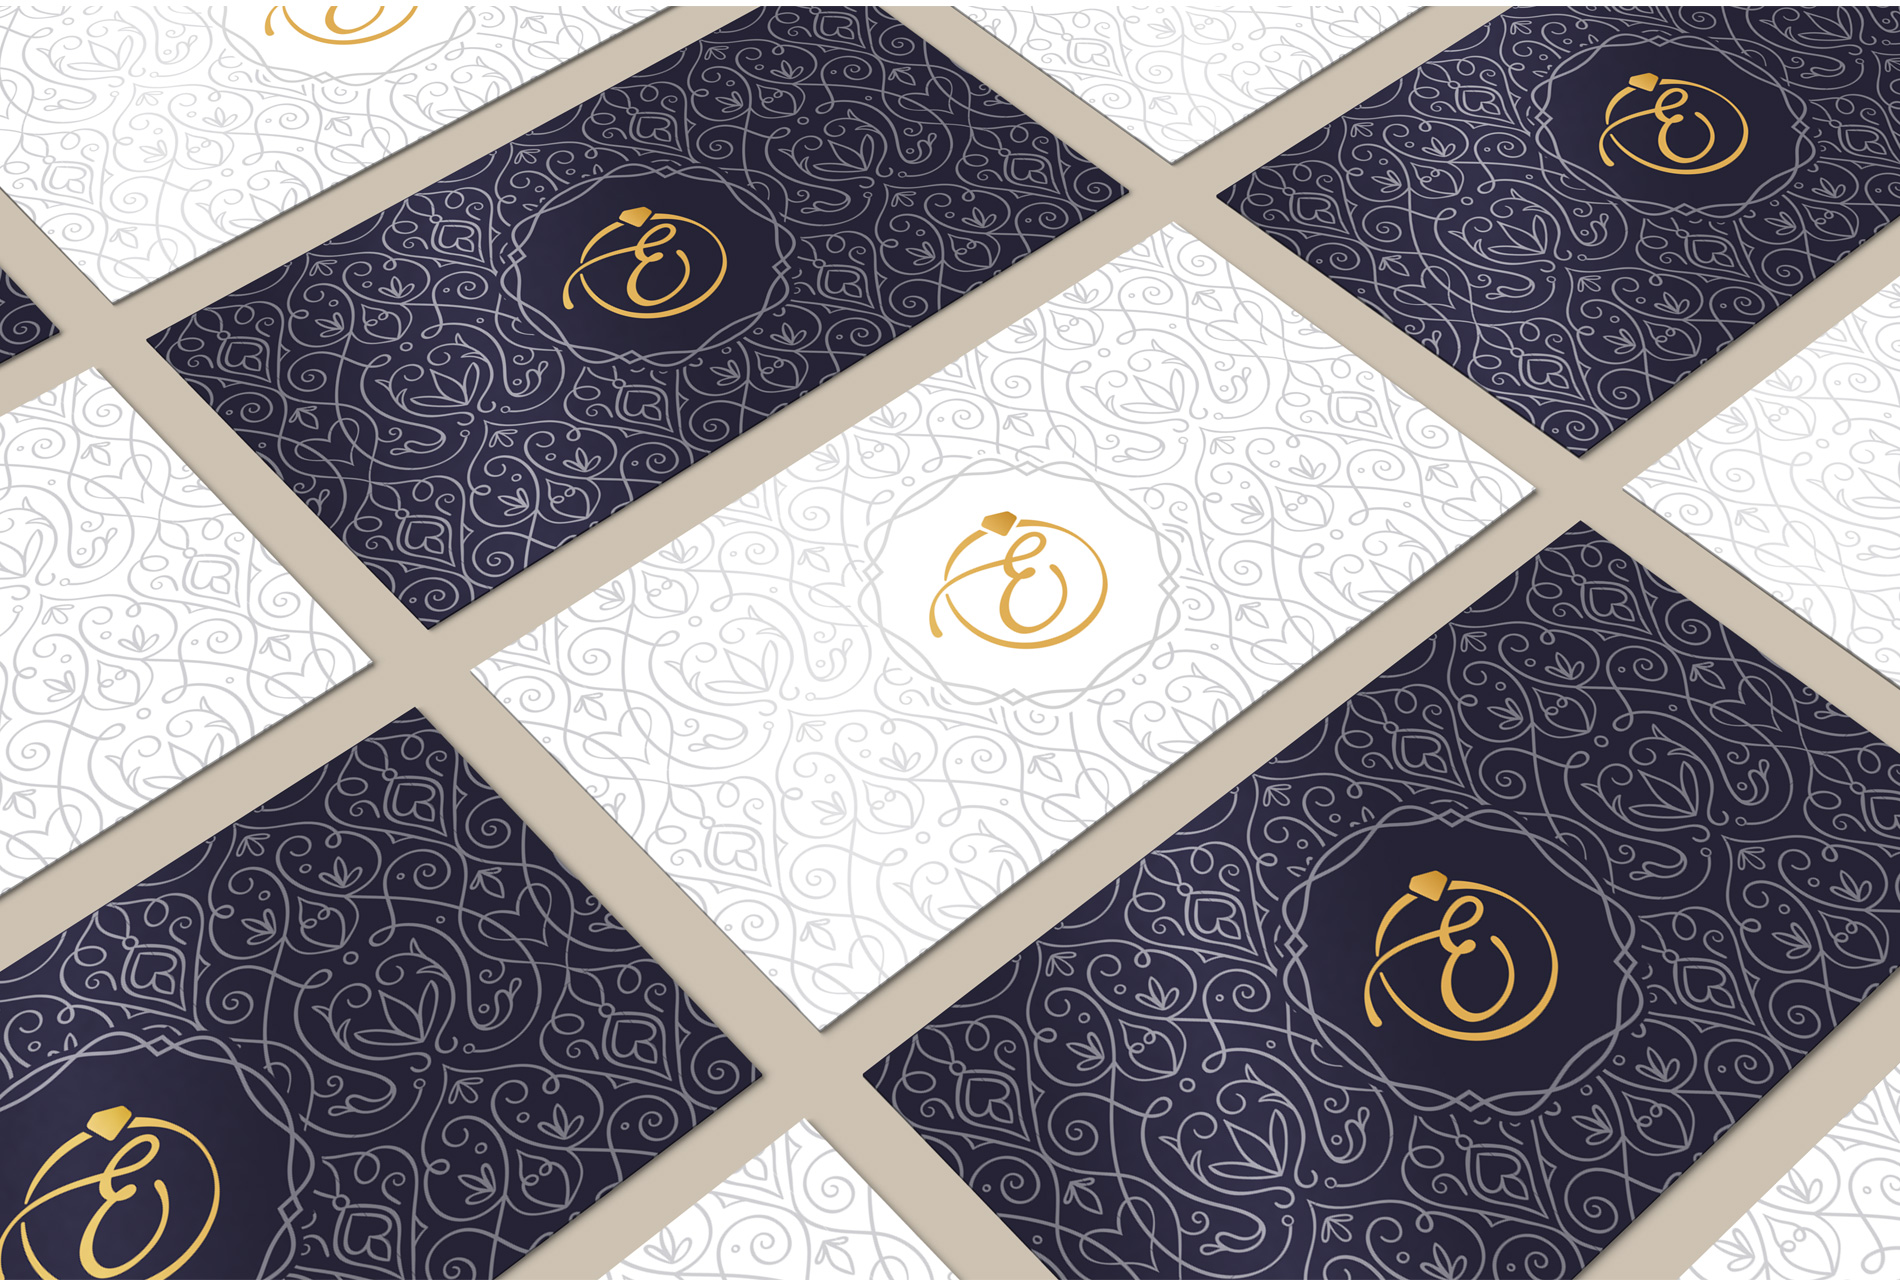 corporate identity business card design with gold foil print and spot-uv